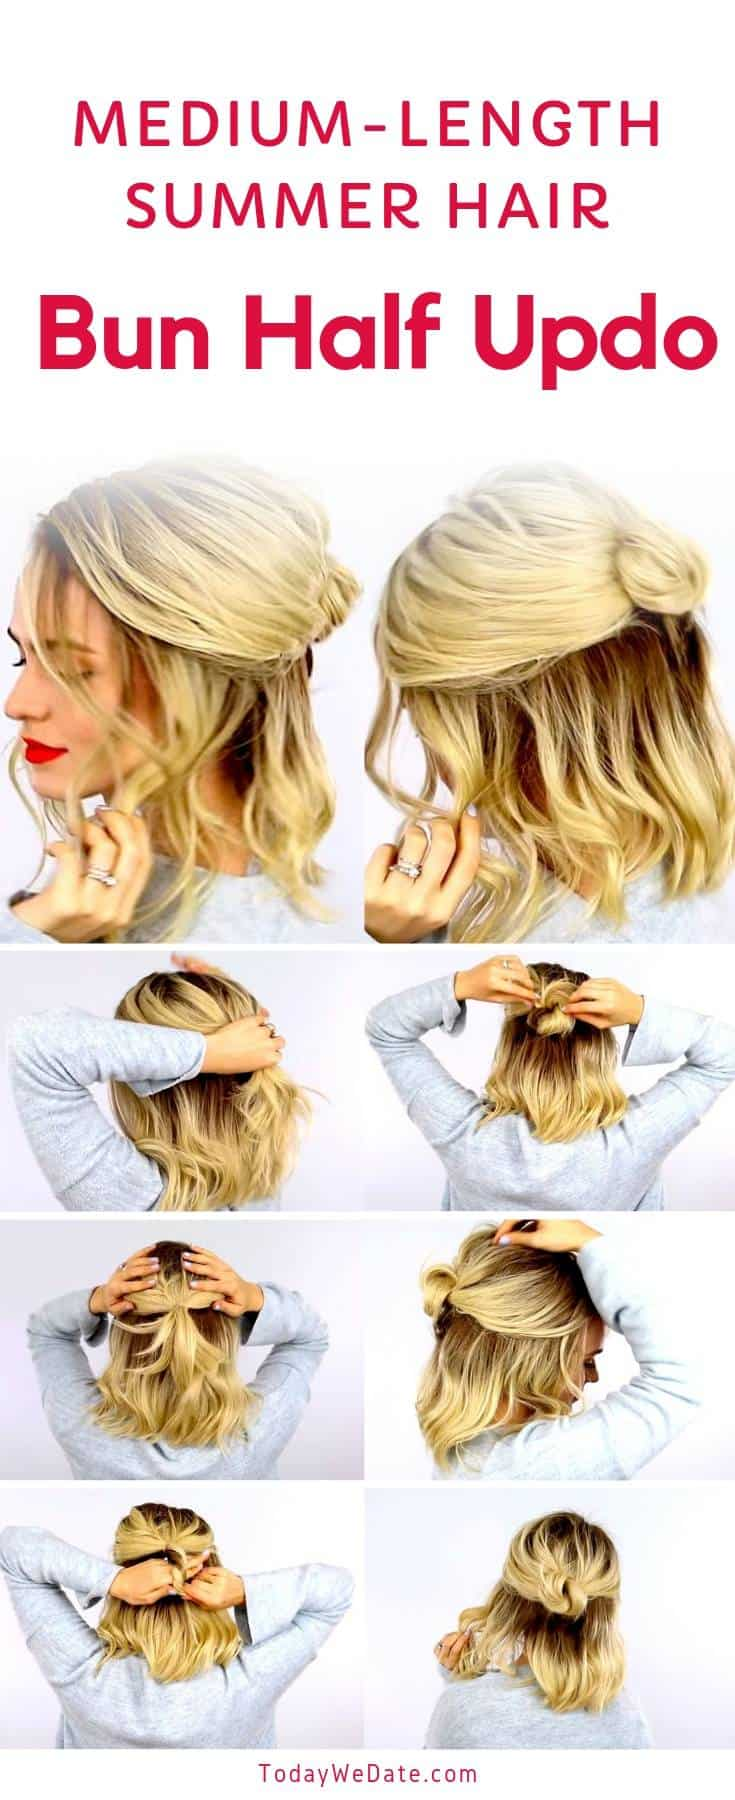 No-heat-easy-summer-hairstyles-todaywedate.com-2